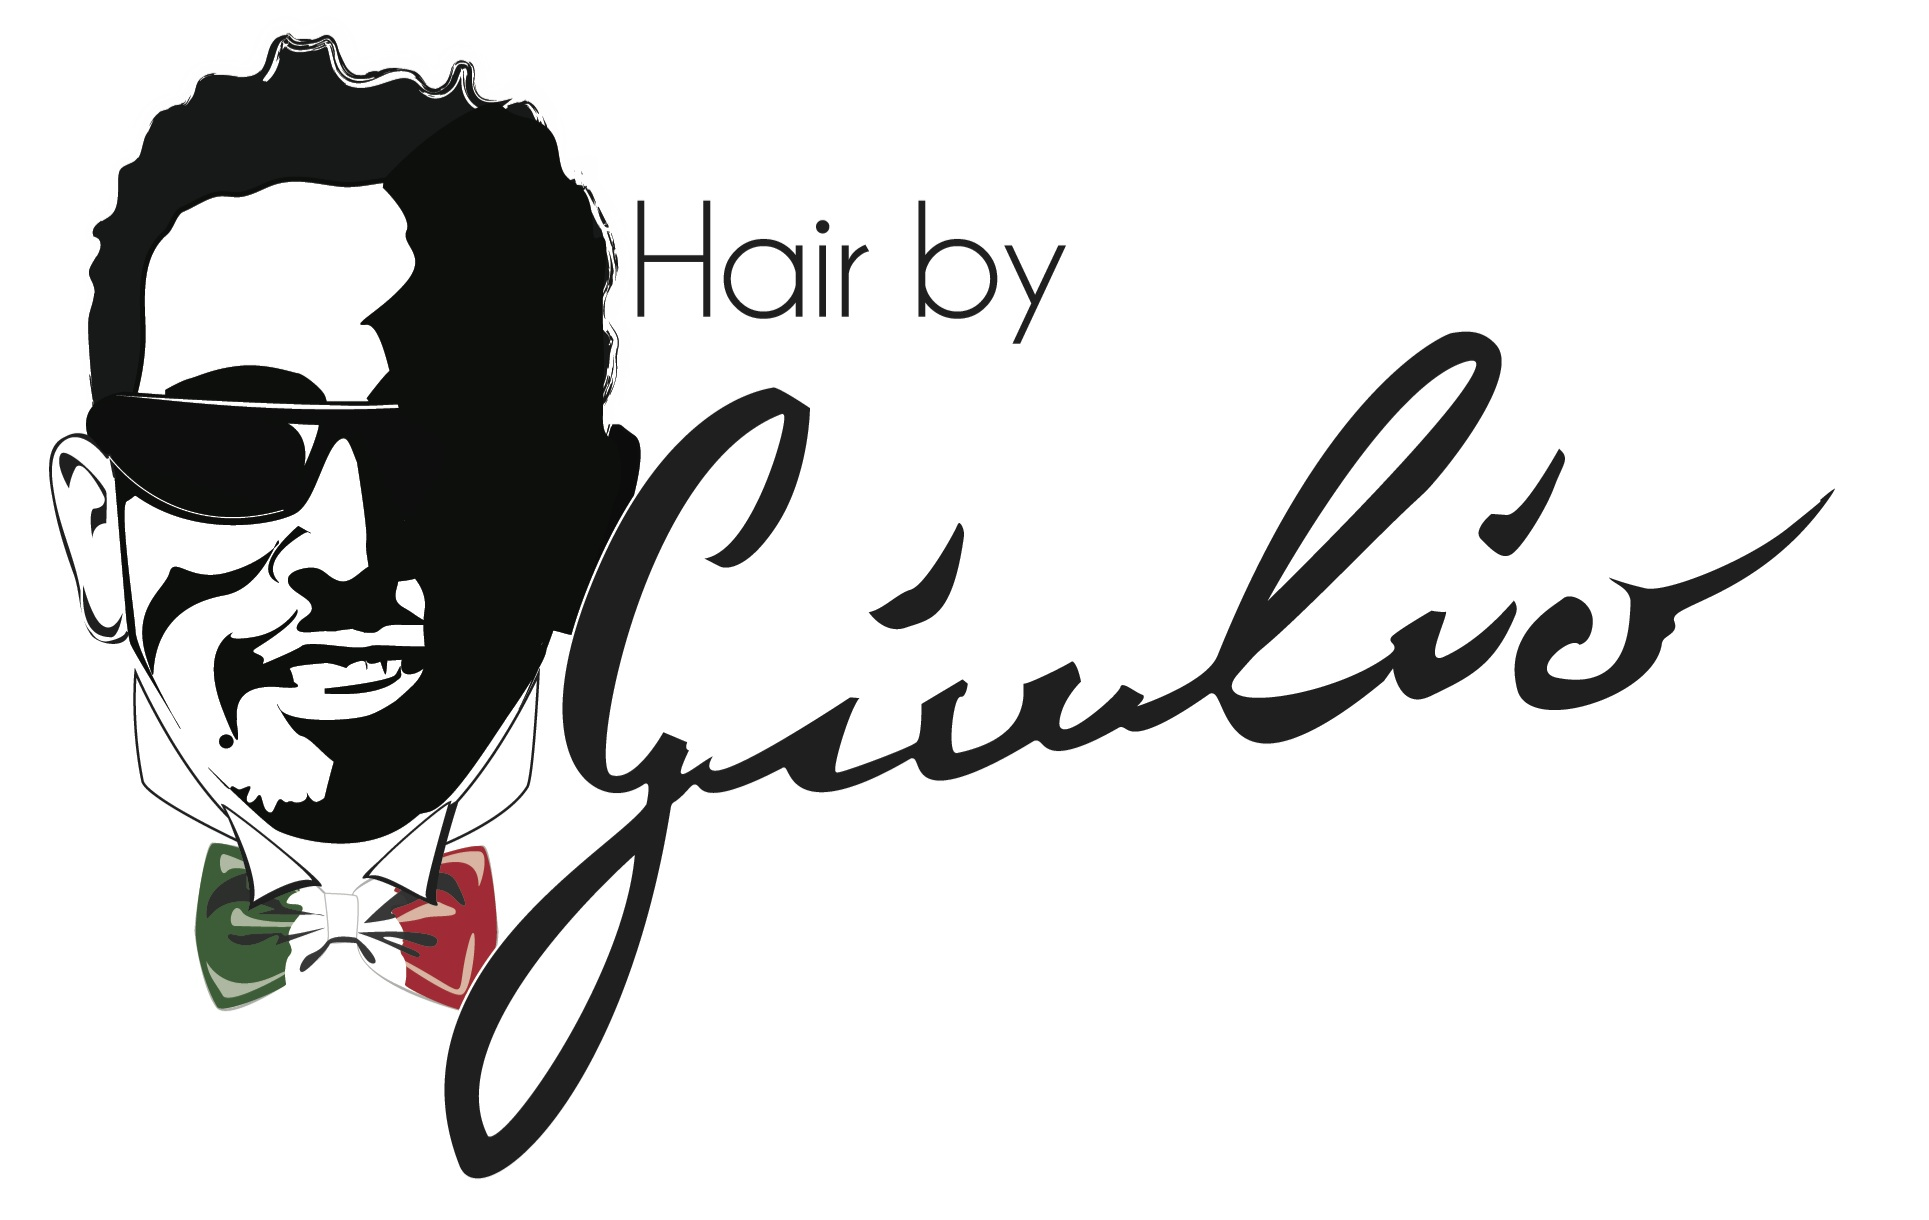 Hair by Giulio